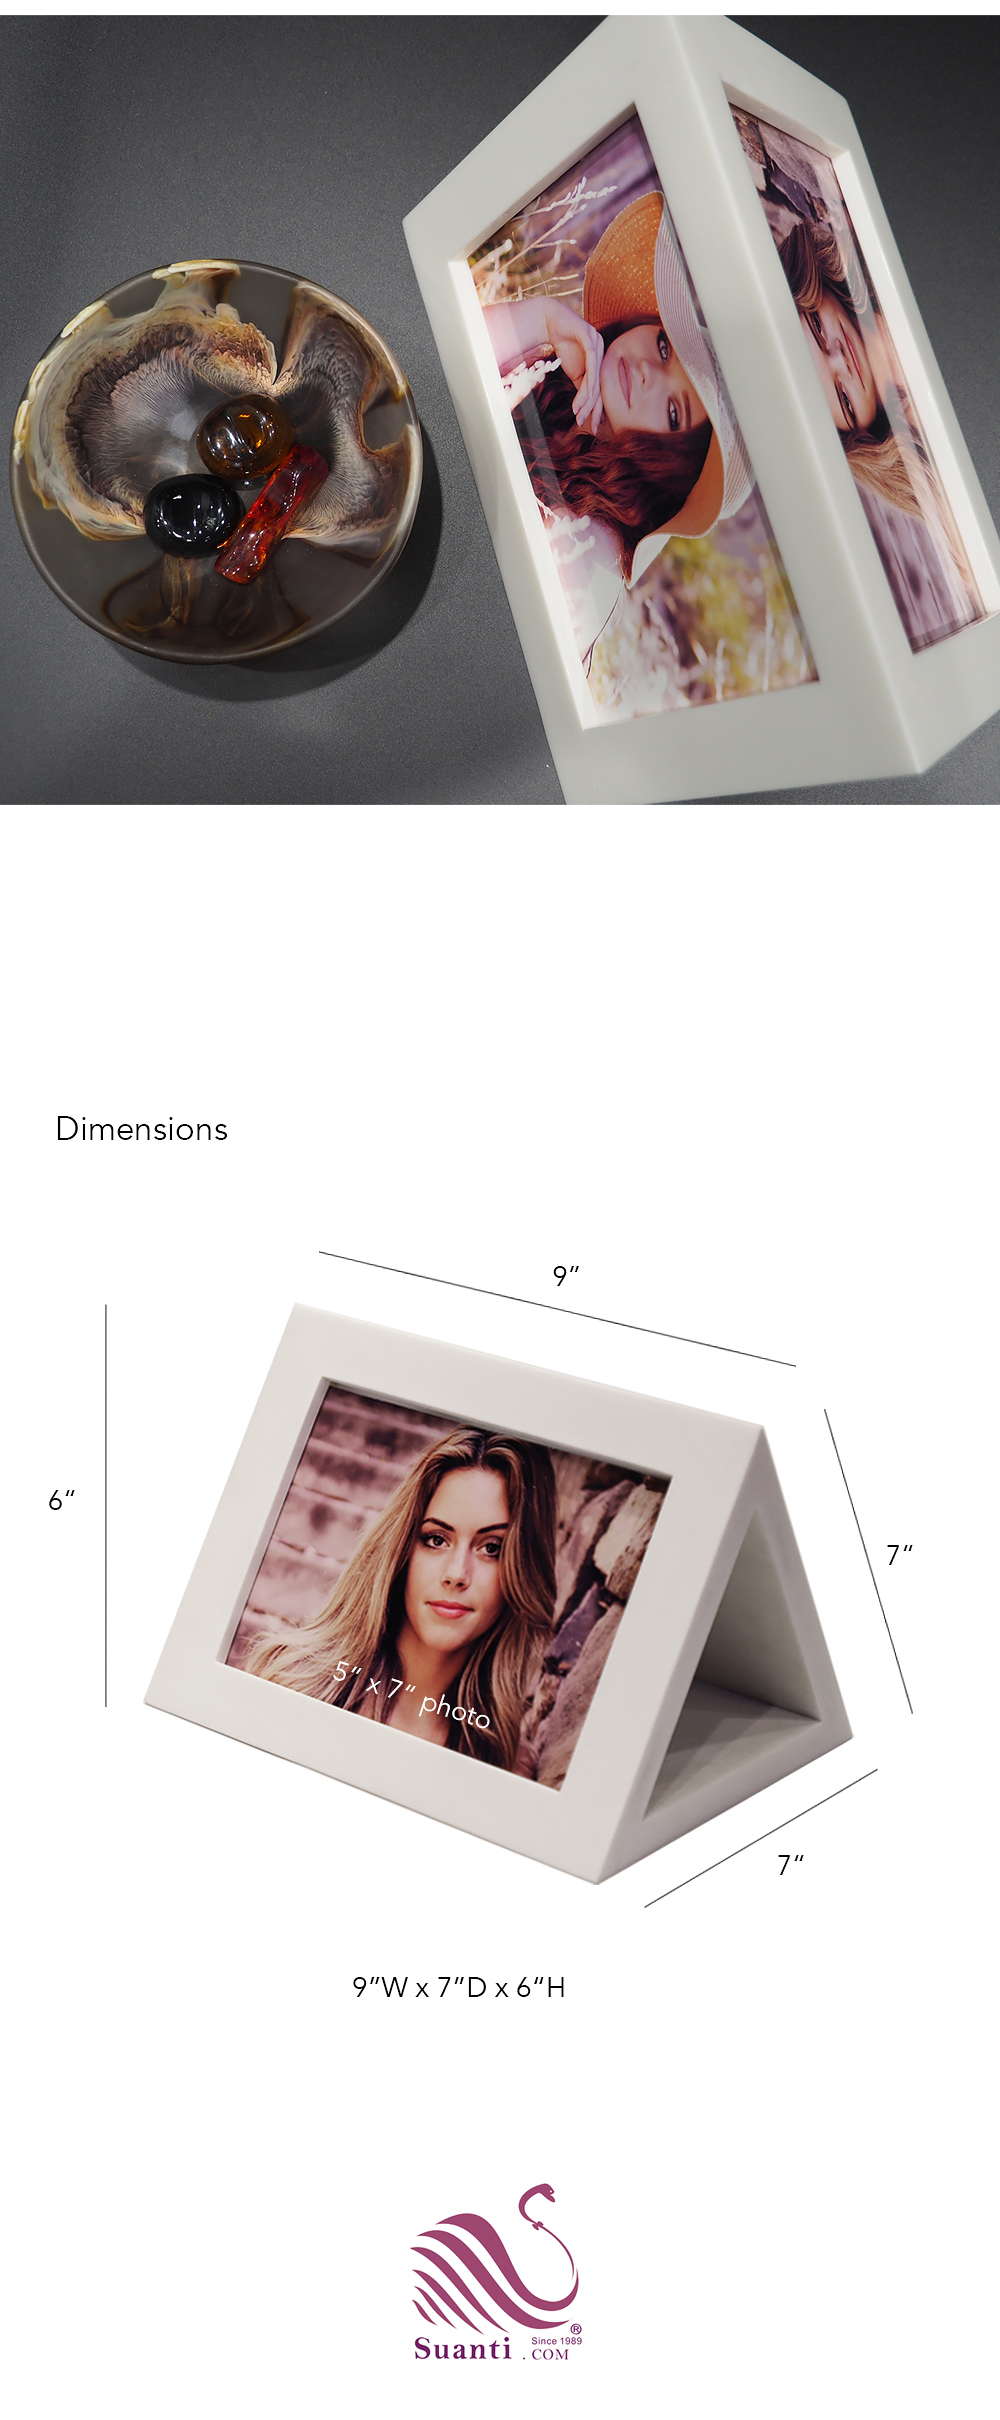 Suanti China wholesales triangle kids resin craft glitter small photo frames diy handmade desktop girl baby white picture frame